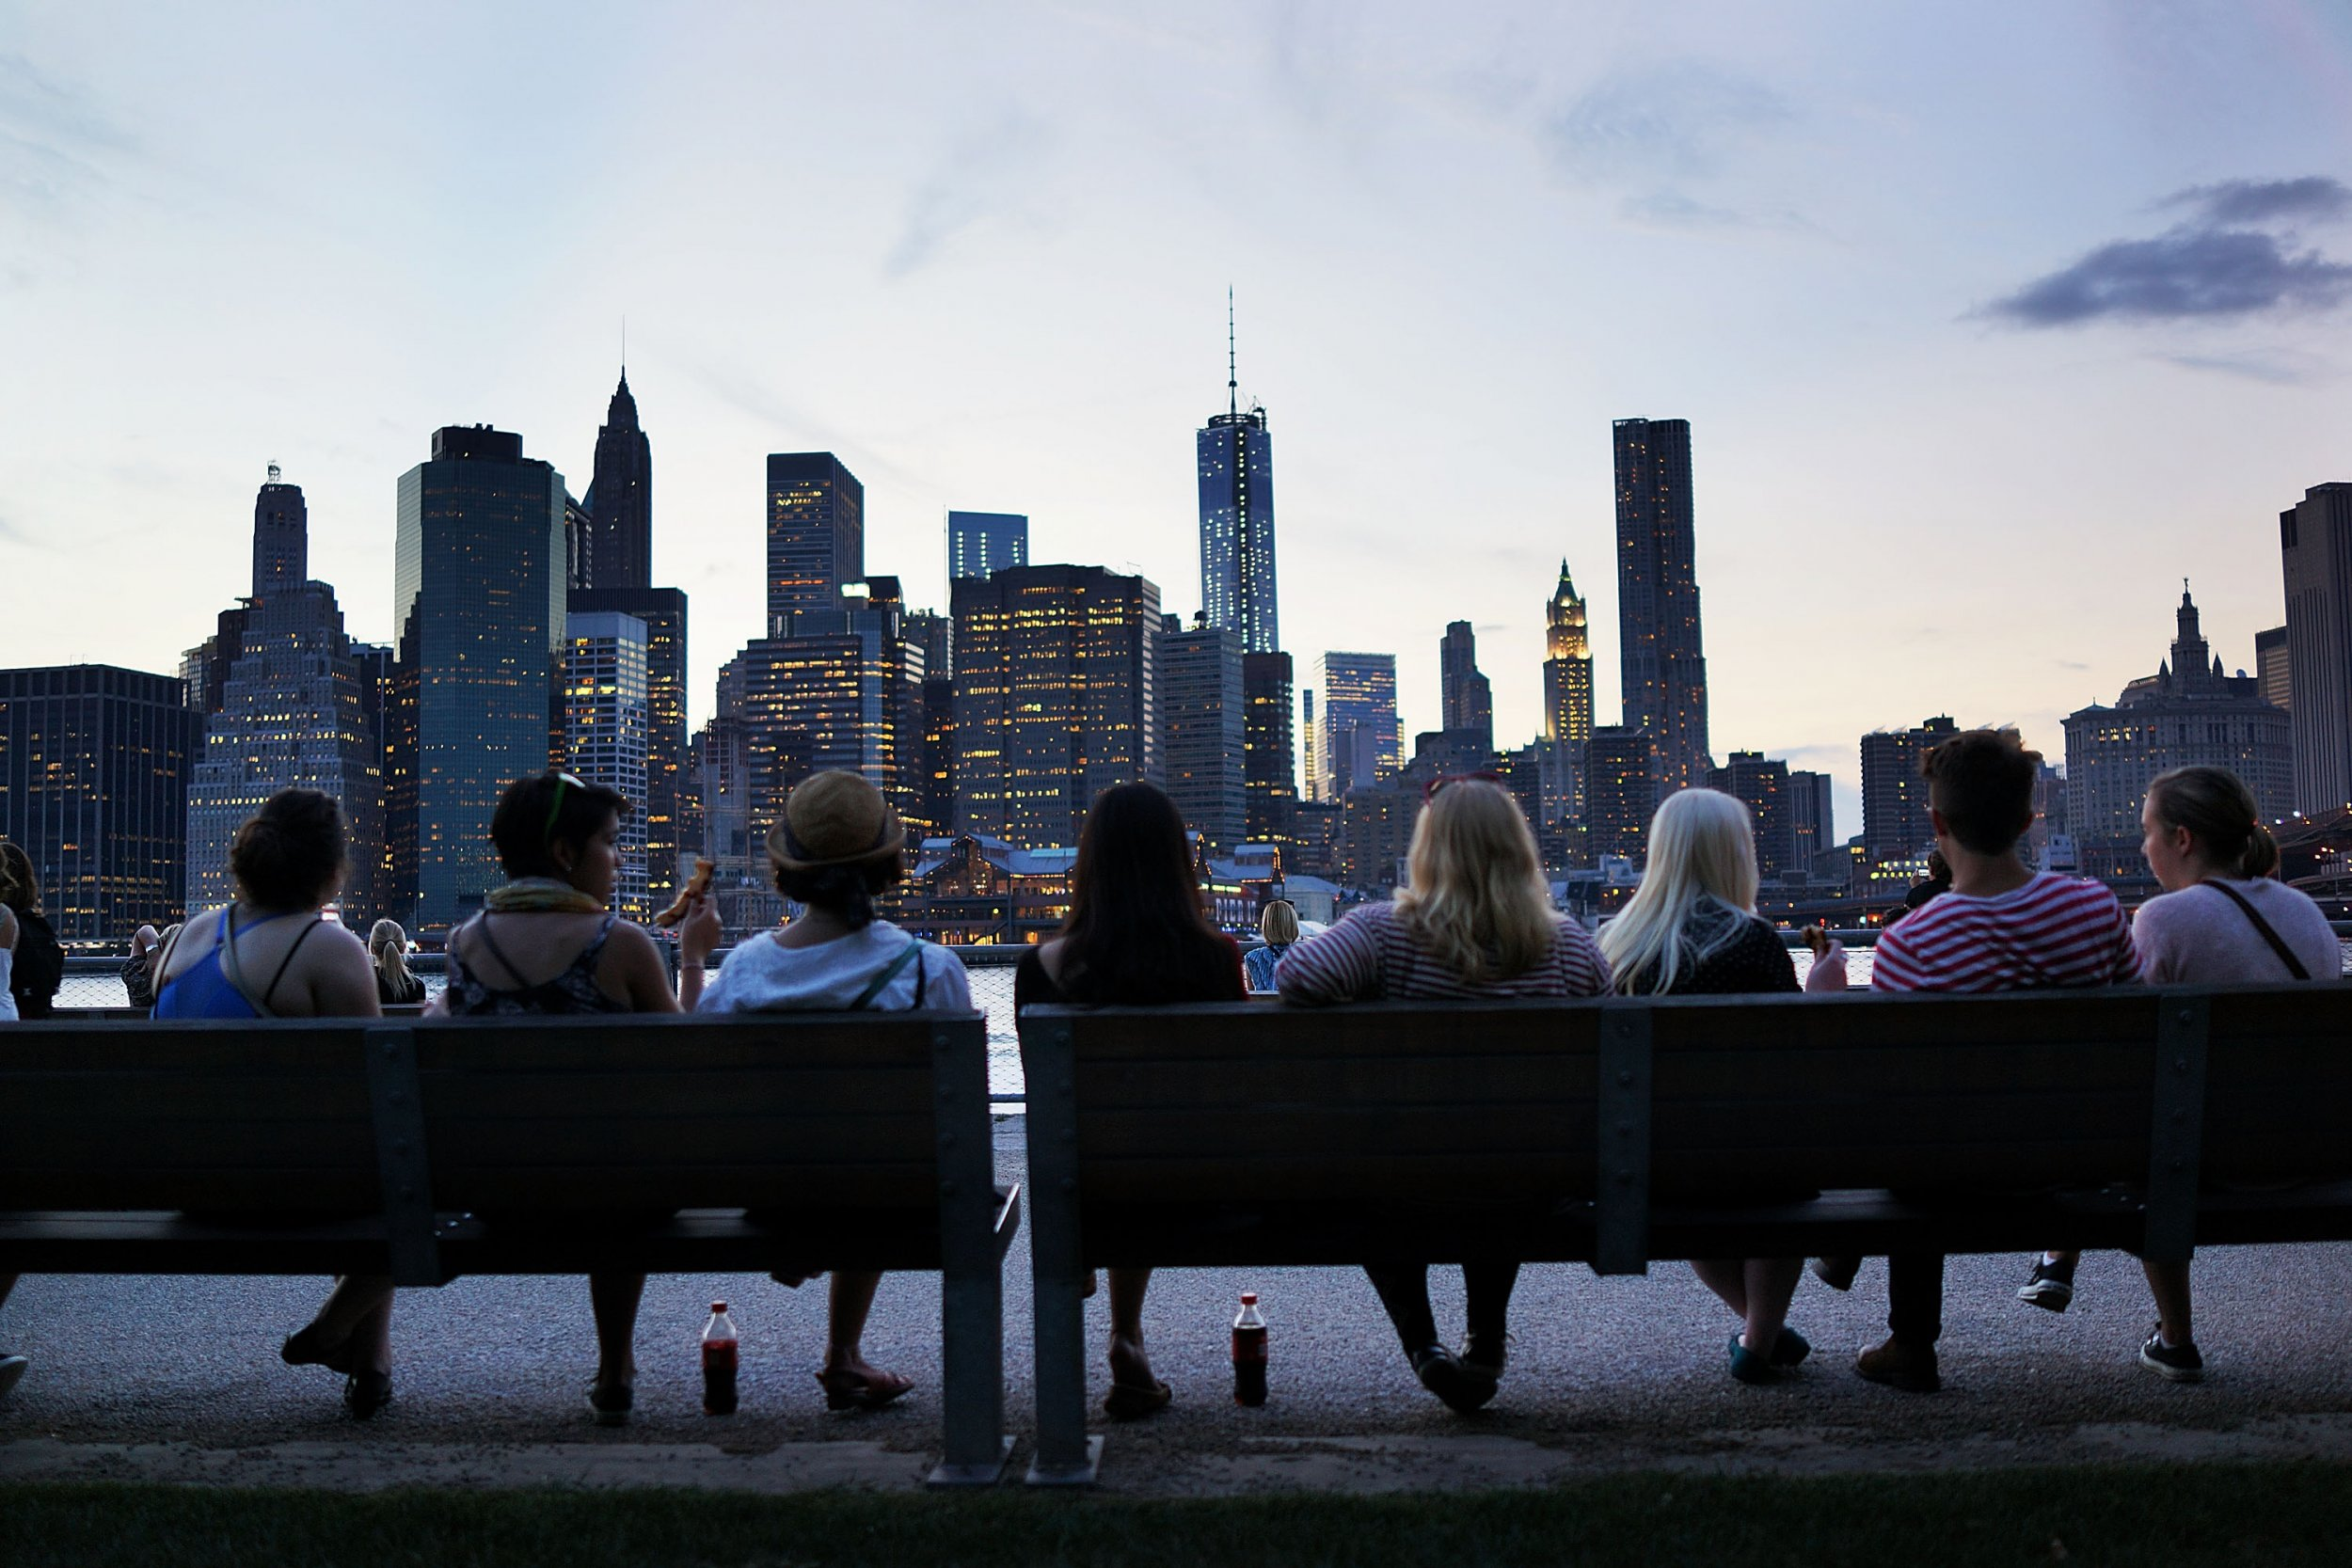 People sitting on a bench in New York